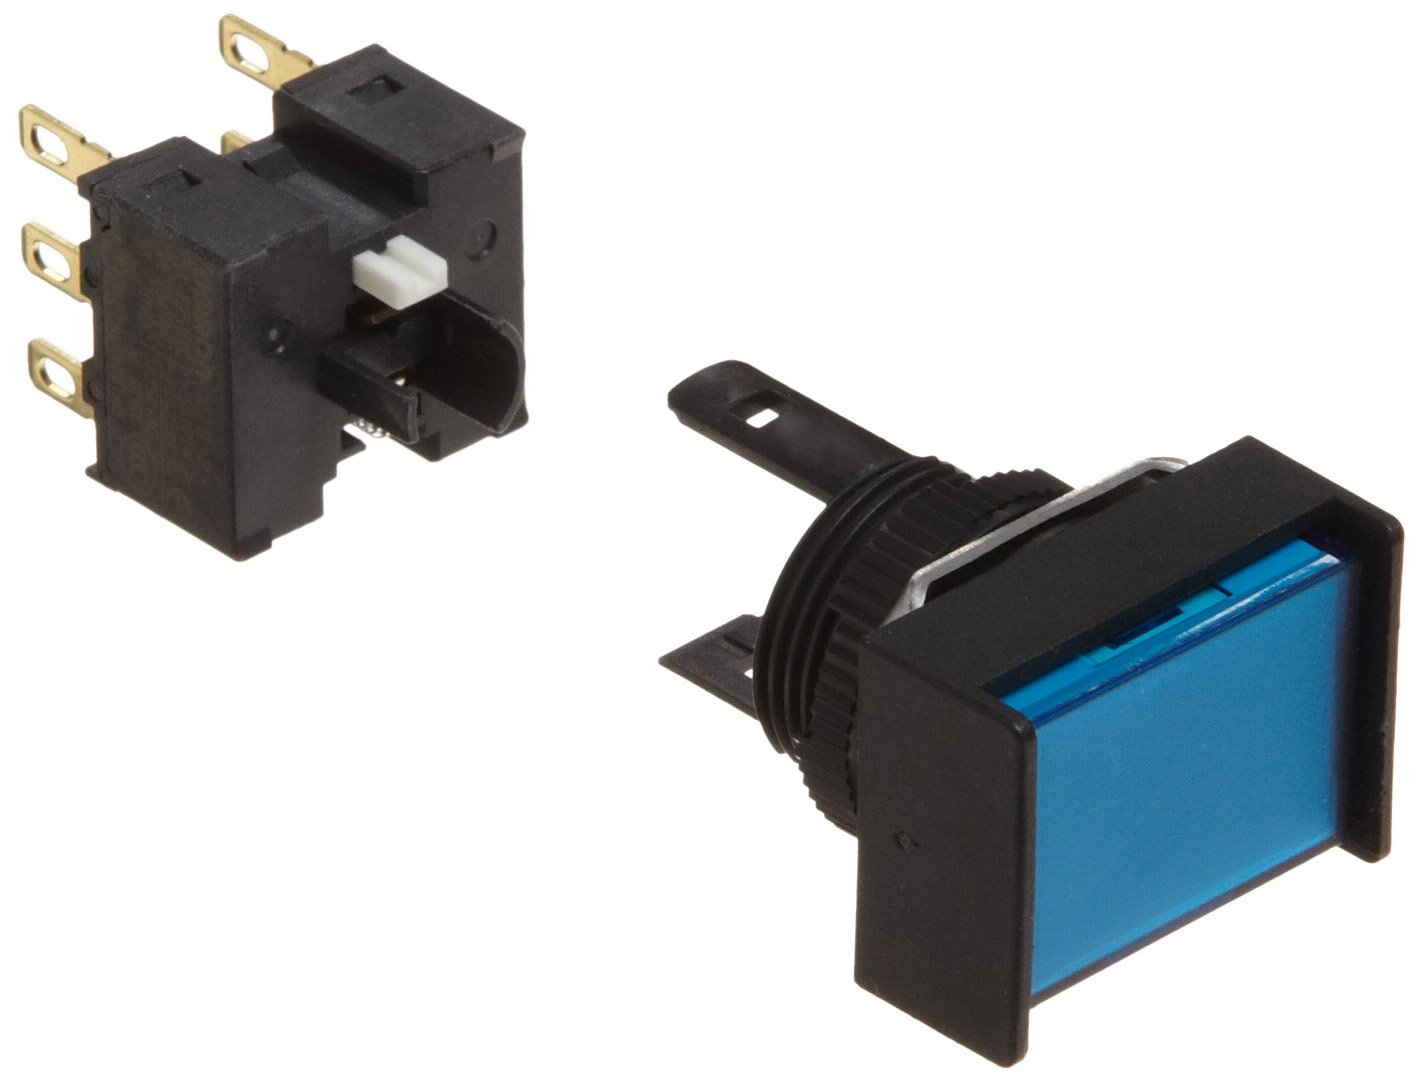 Omron A165-JAA-2 Two Way Guard Type Pushbutton and Switch, Solder Terminal, IP65 Oil Resistant, 16mm Mounting Aperture, Non-Lighted, Alternate Operation, Rectangular, Blue, Double Pole Double Throw Contacts